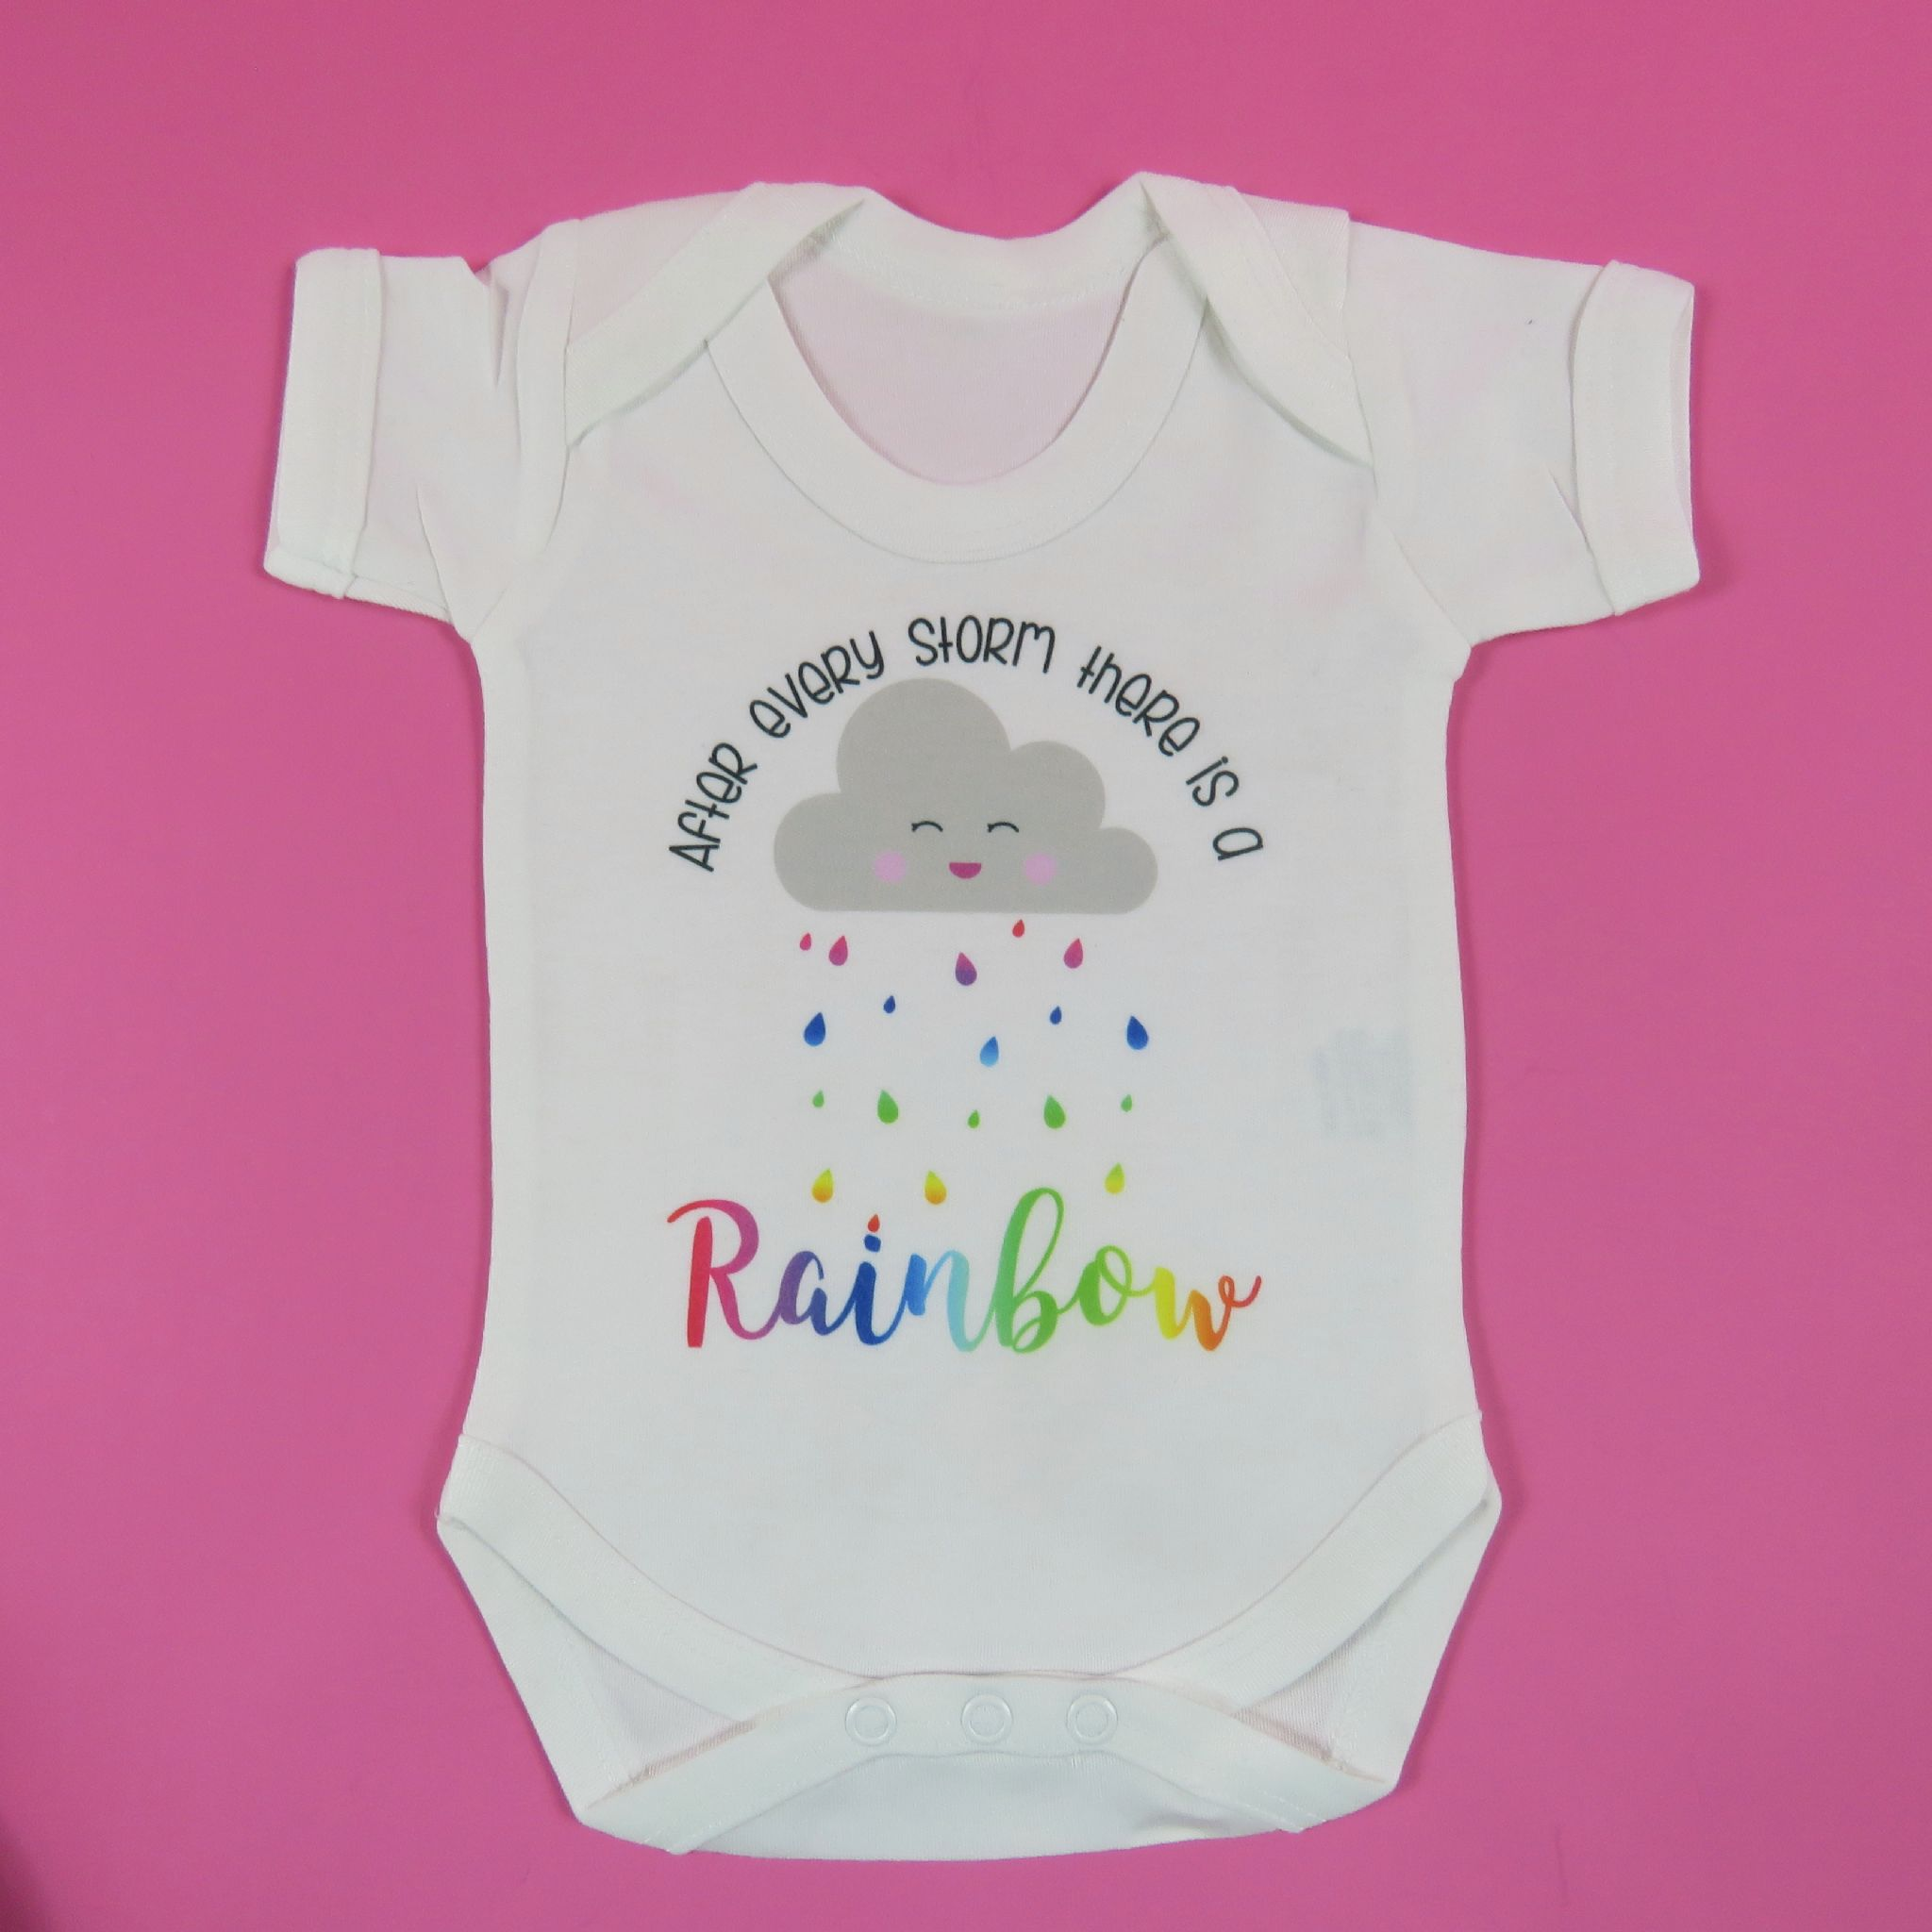 After Every Storm There Is A Rainbow Baby Vest Miracle Baby Newborn Baby  Baby Shower Gift Pregnancy